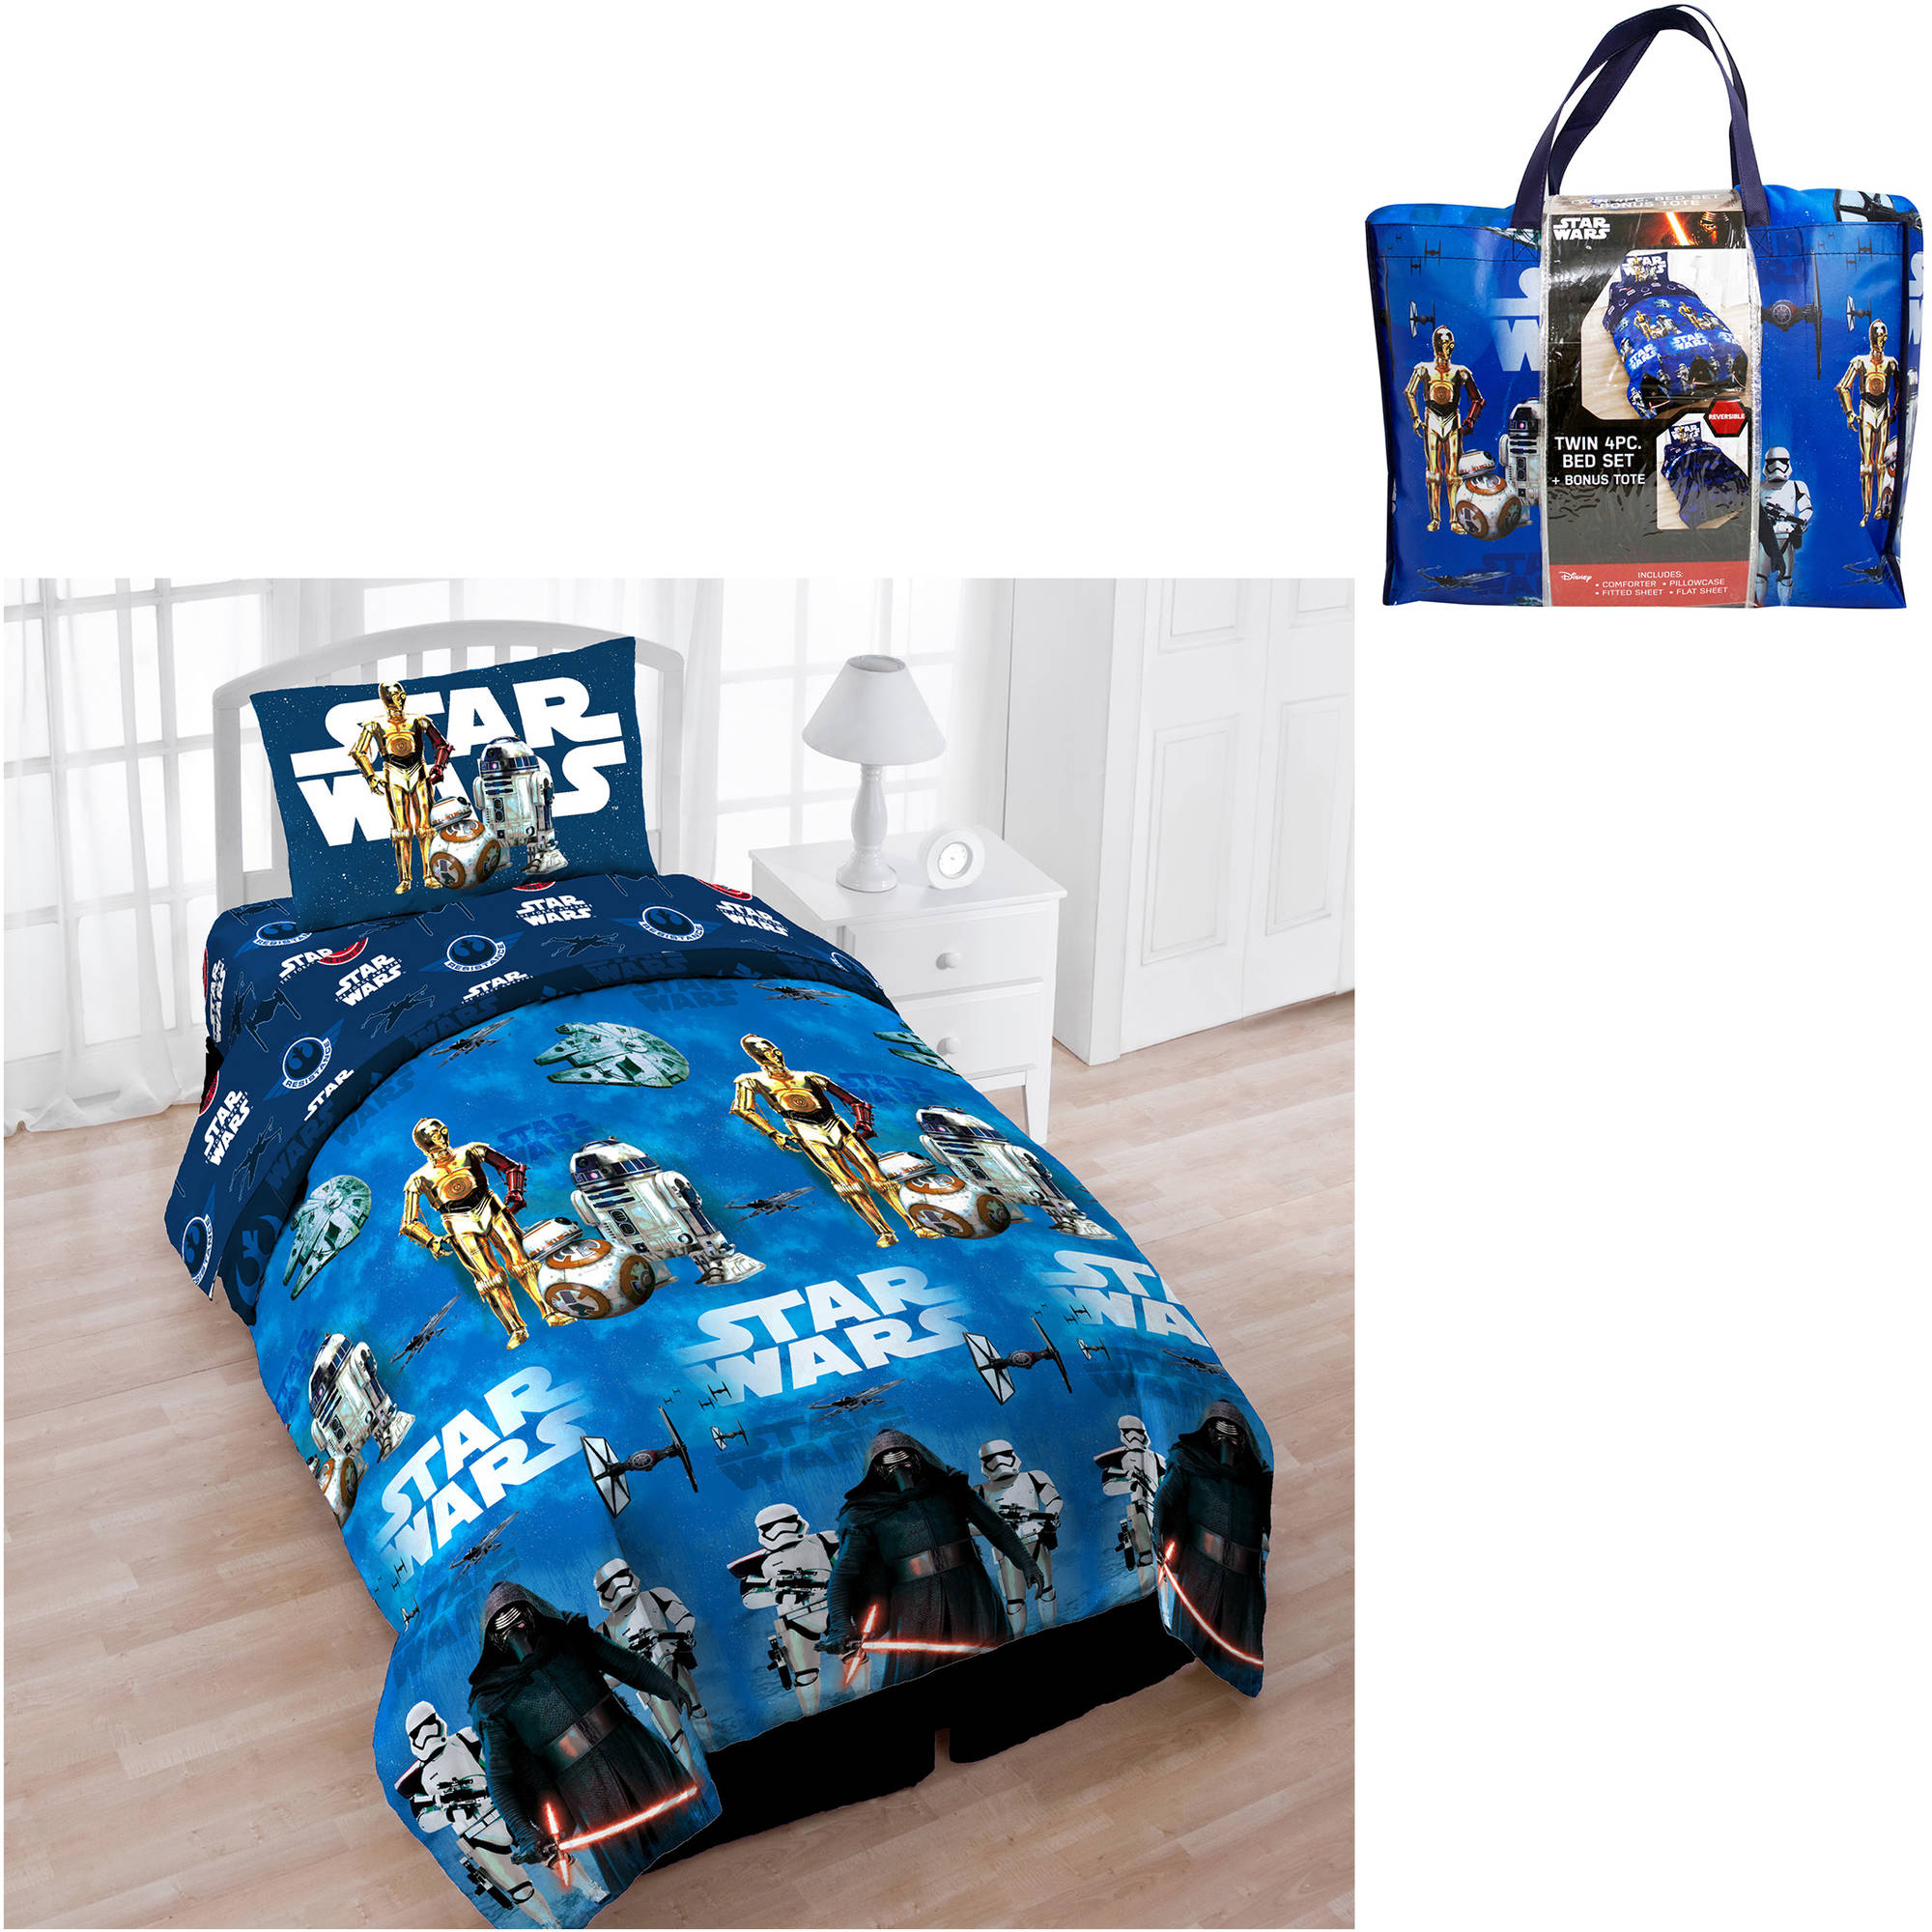 jay franco & sons in star wars episode 7 4pc bed set - walmart